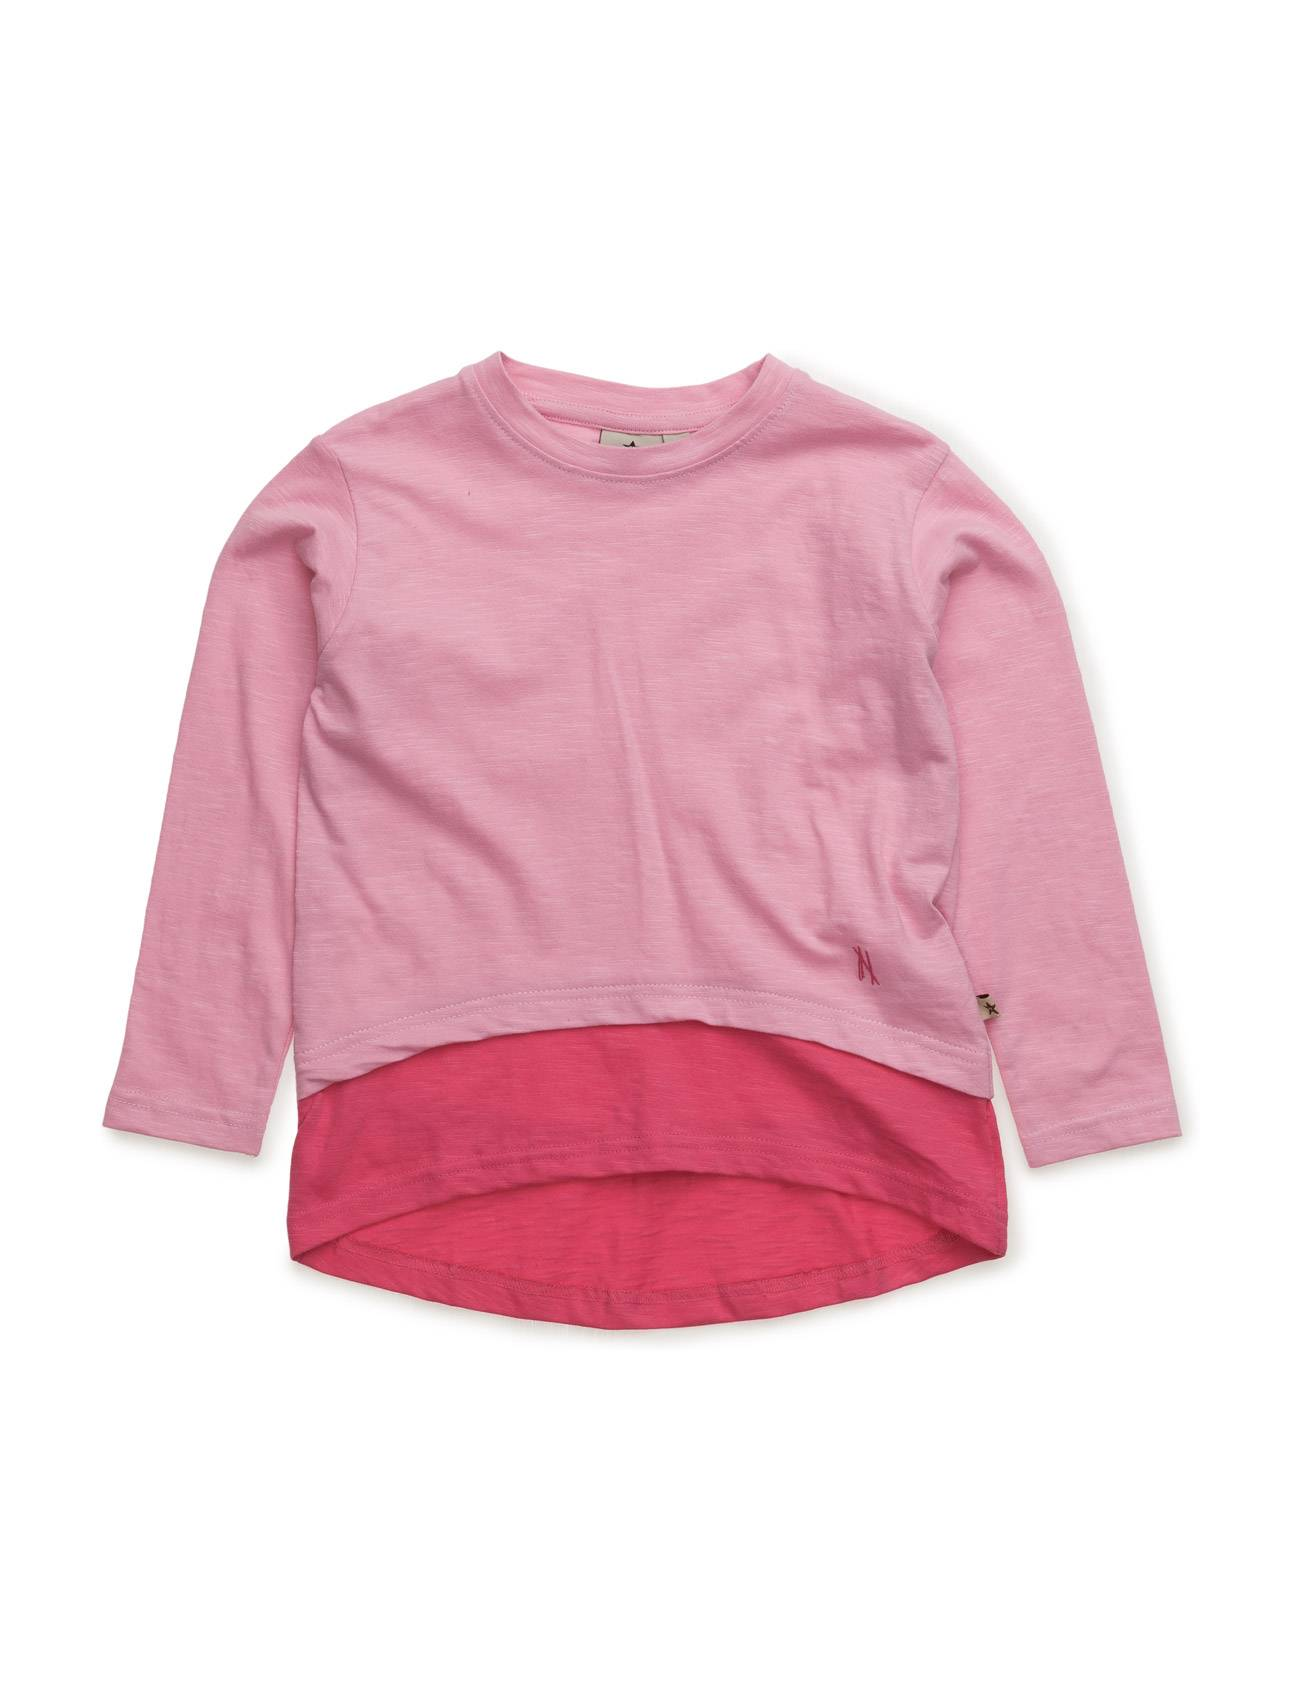 NOVA STAR Top Summerpink